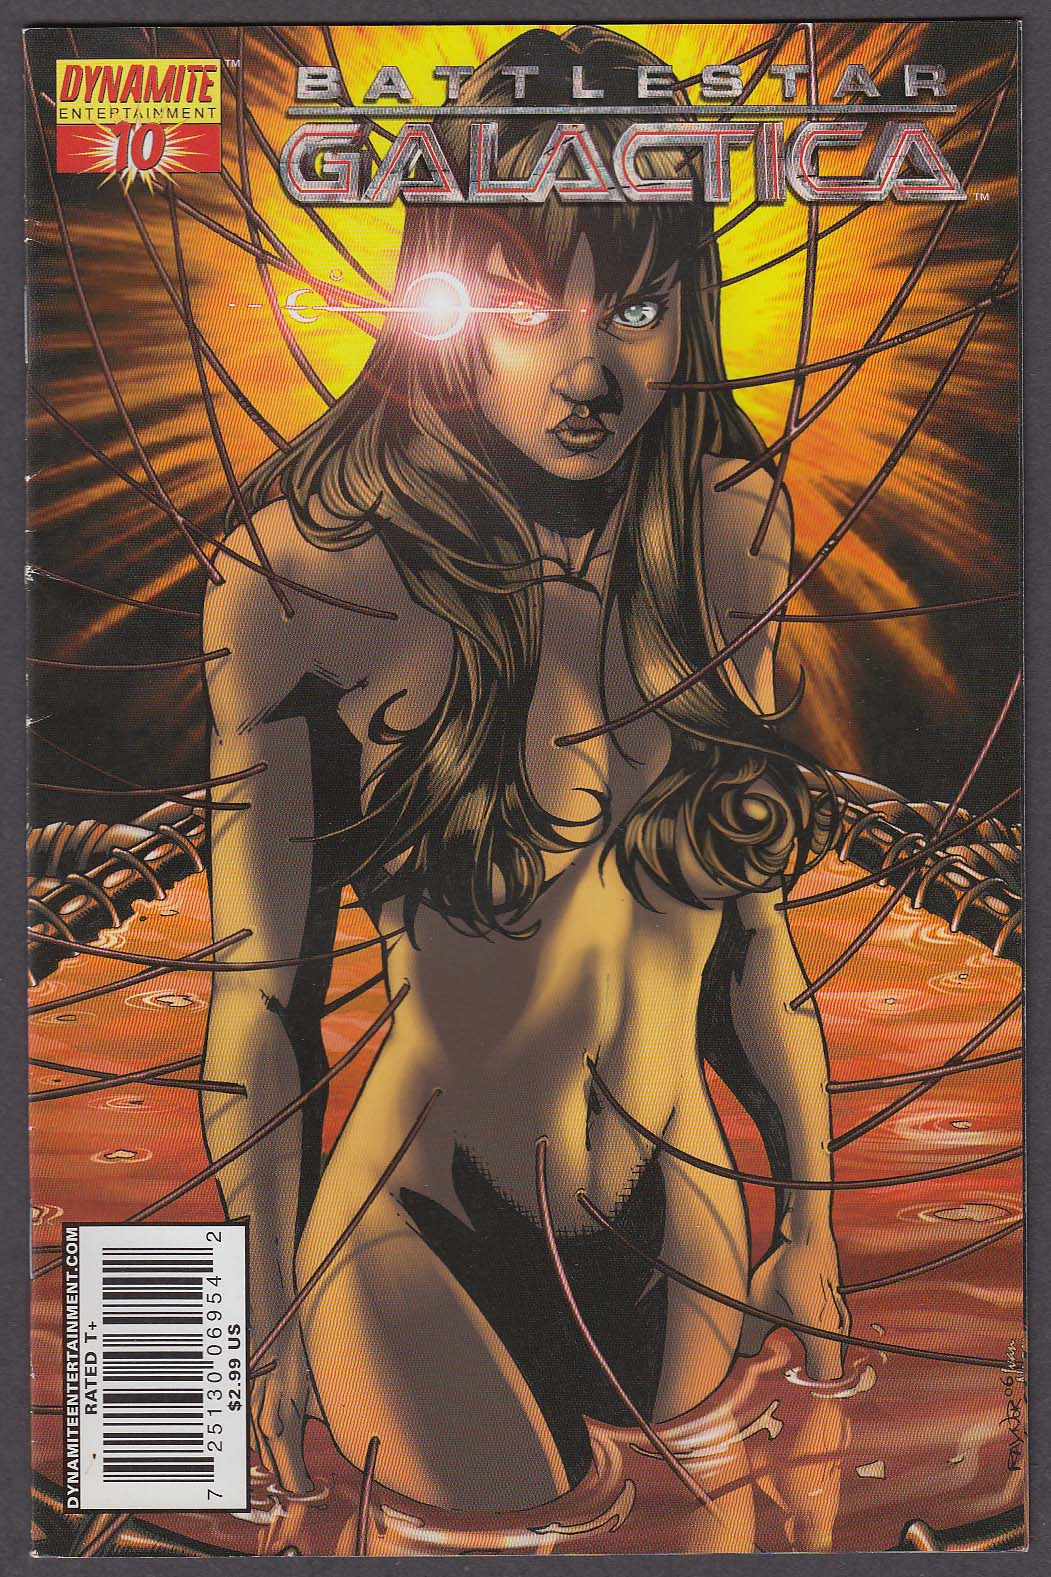 Image for BATTLESTAR GALACTICA #10 Dynamite comic book 2007 1st Printing